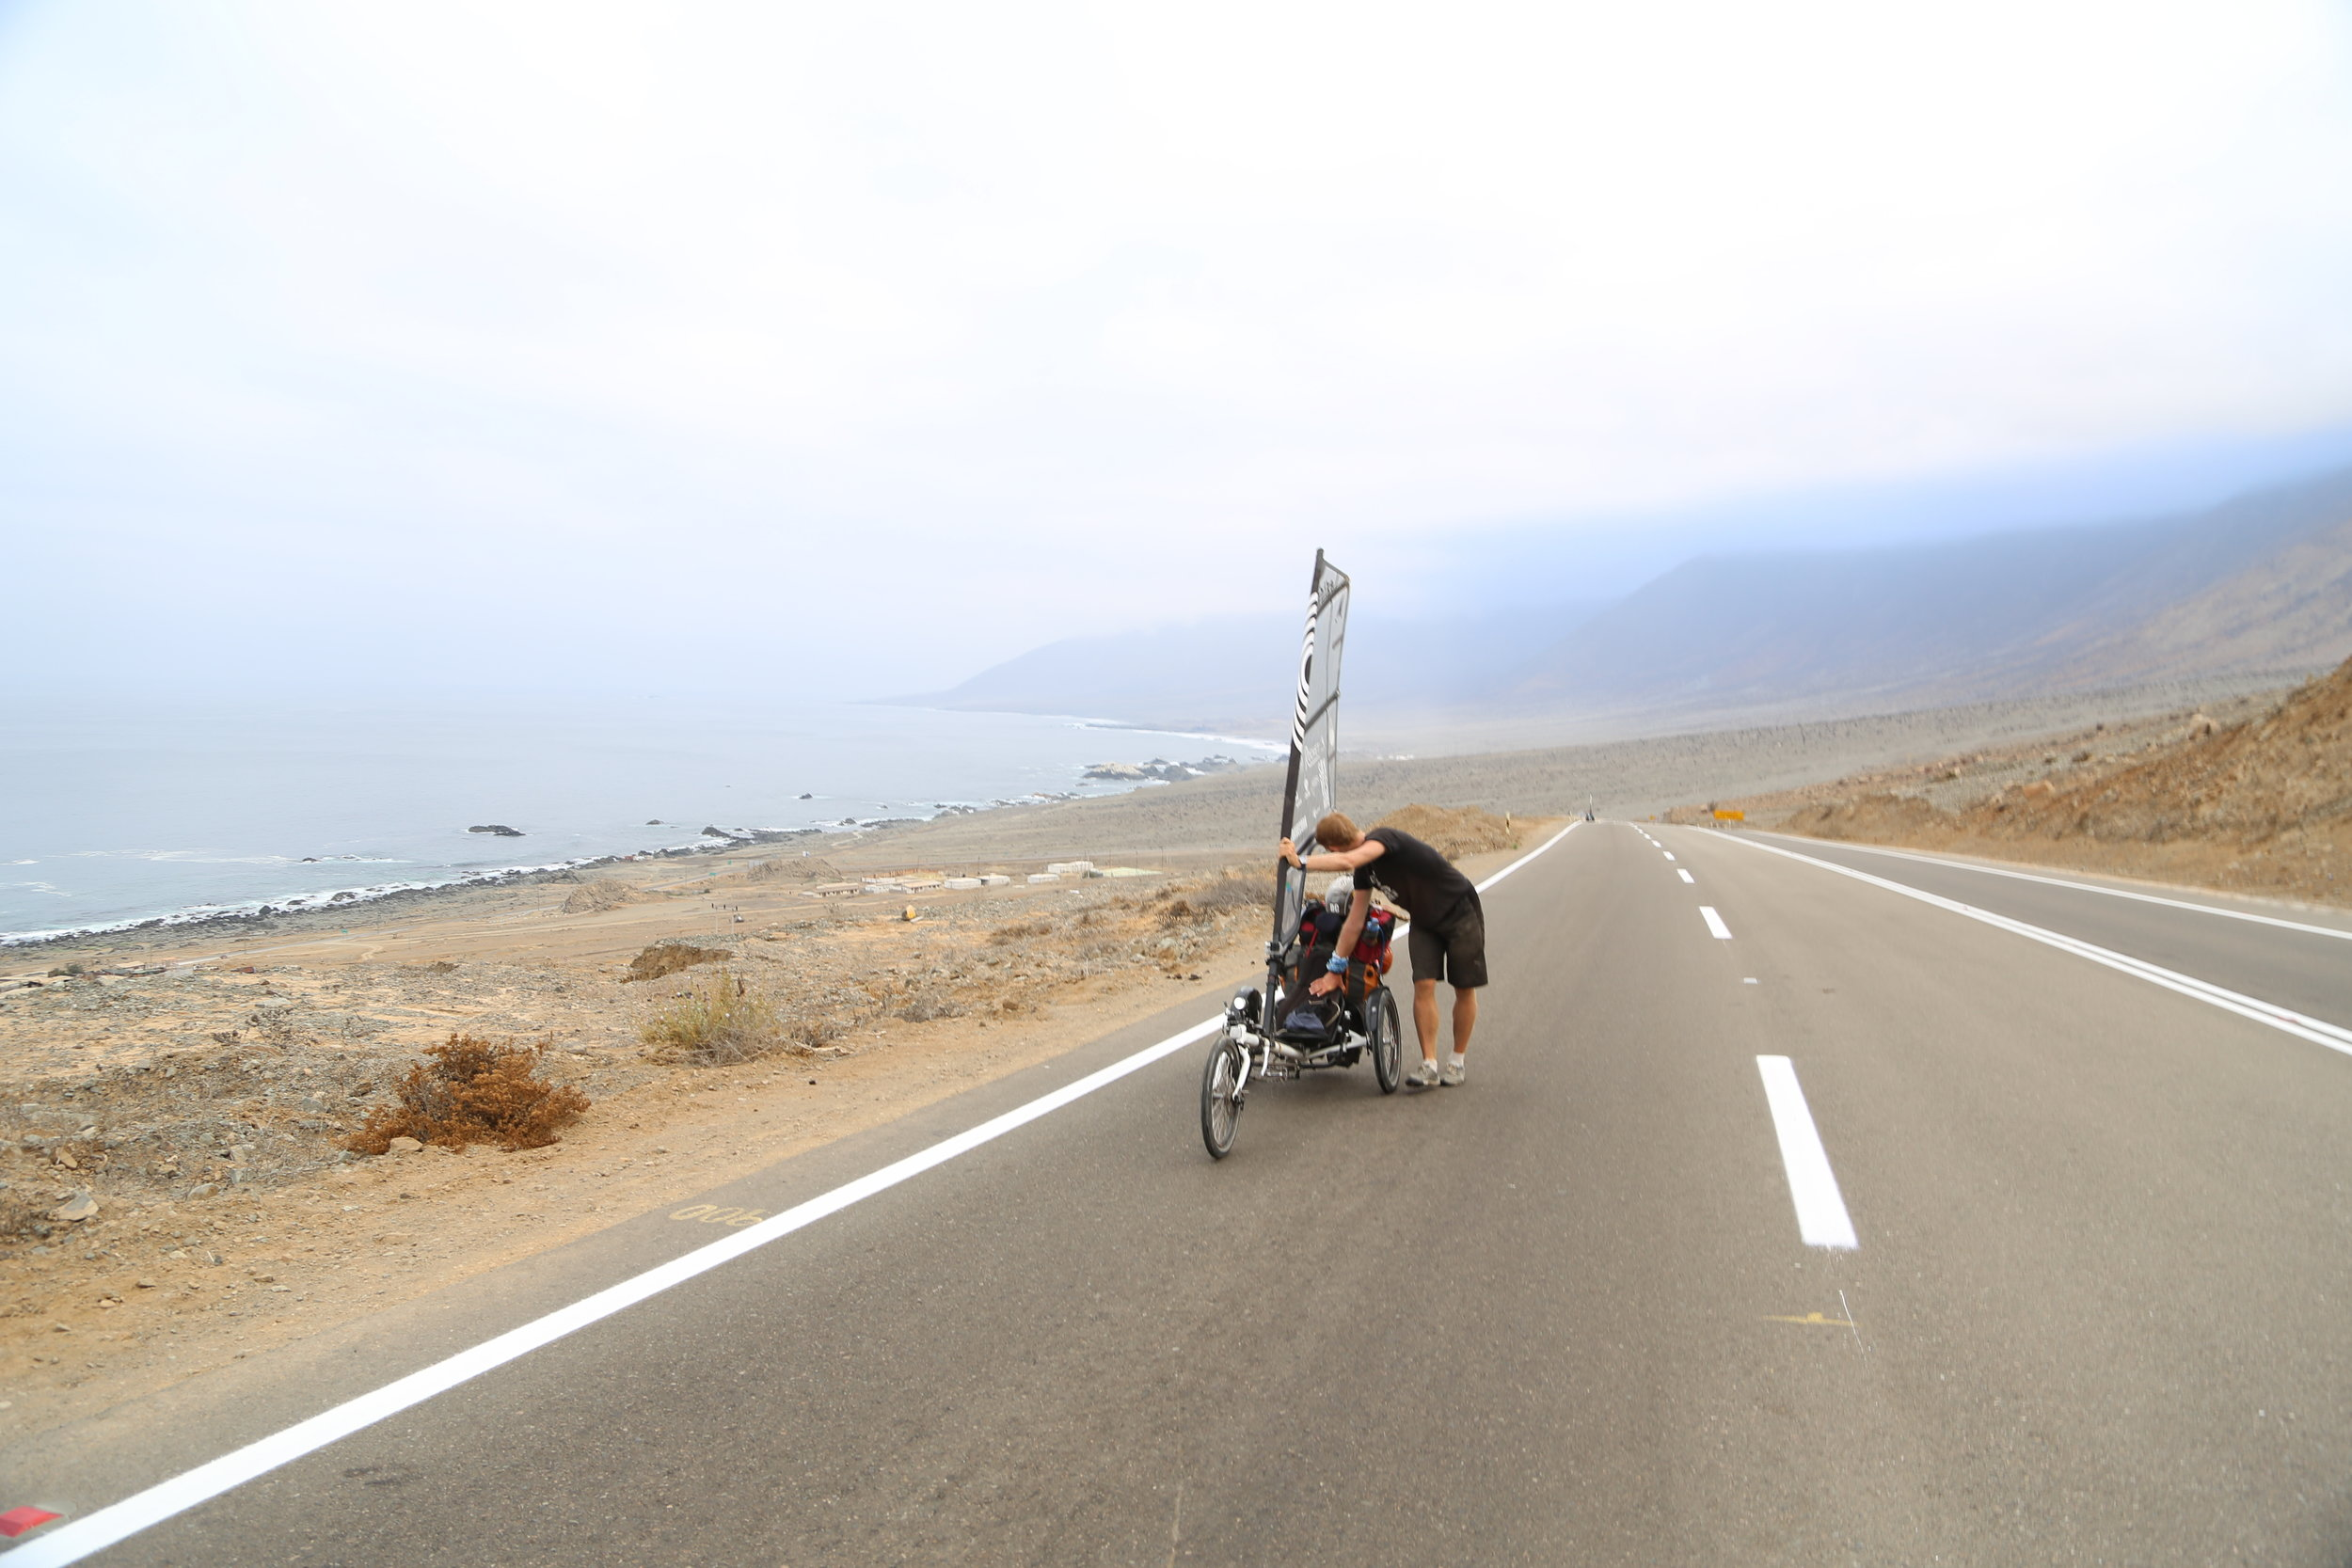 Sometimes you have to get off and push. Rising up from the Pacific on a Chilean desert hill that my Whike wasn't designed for.